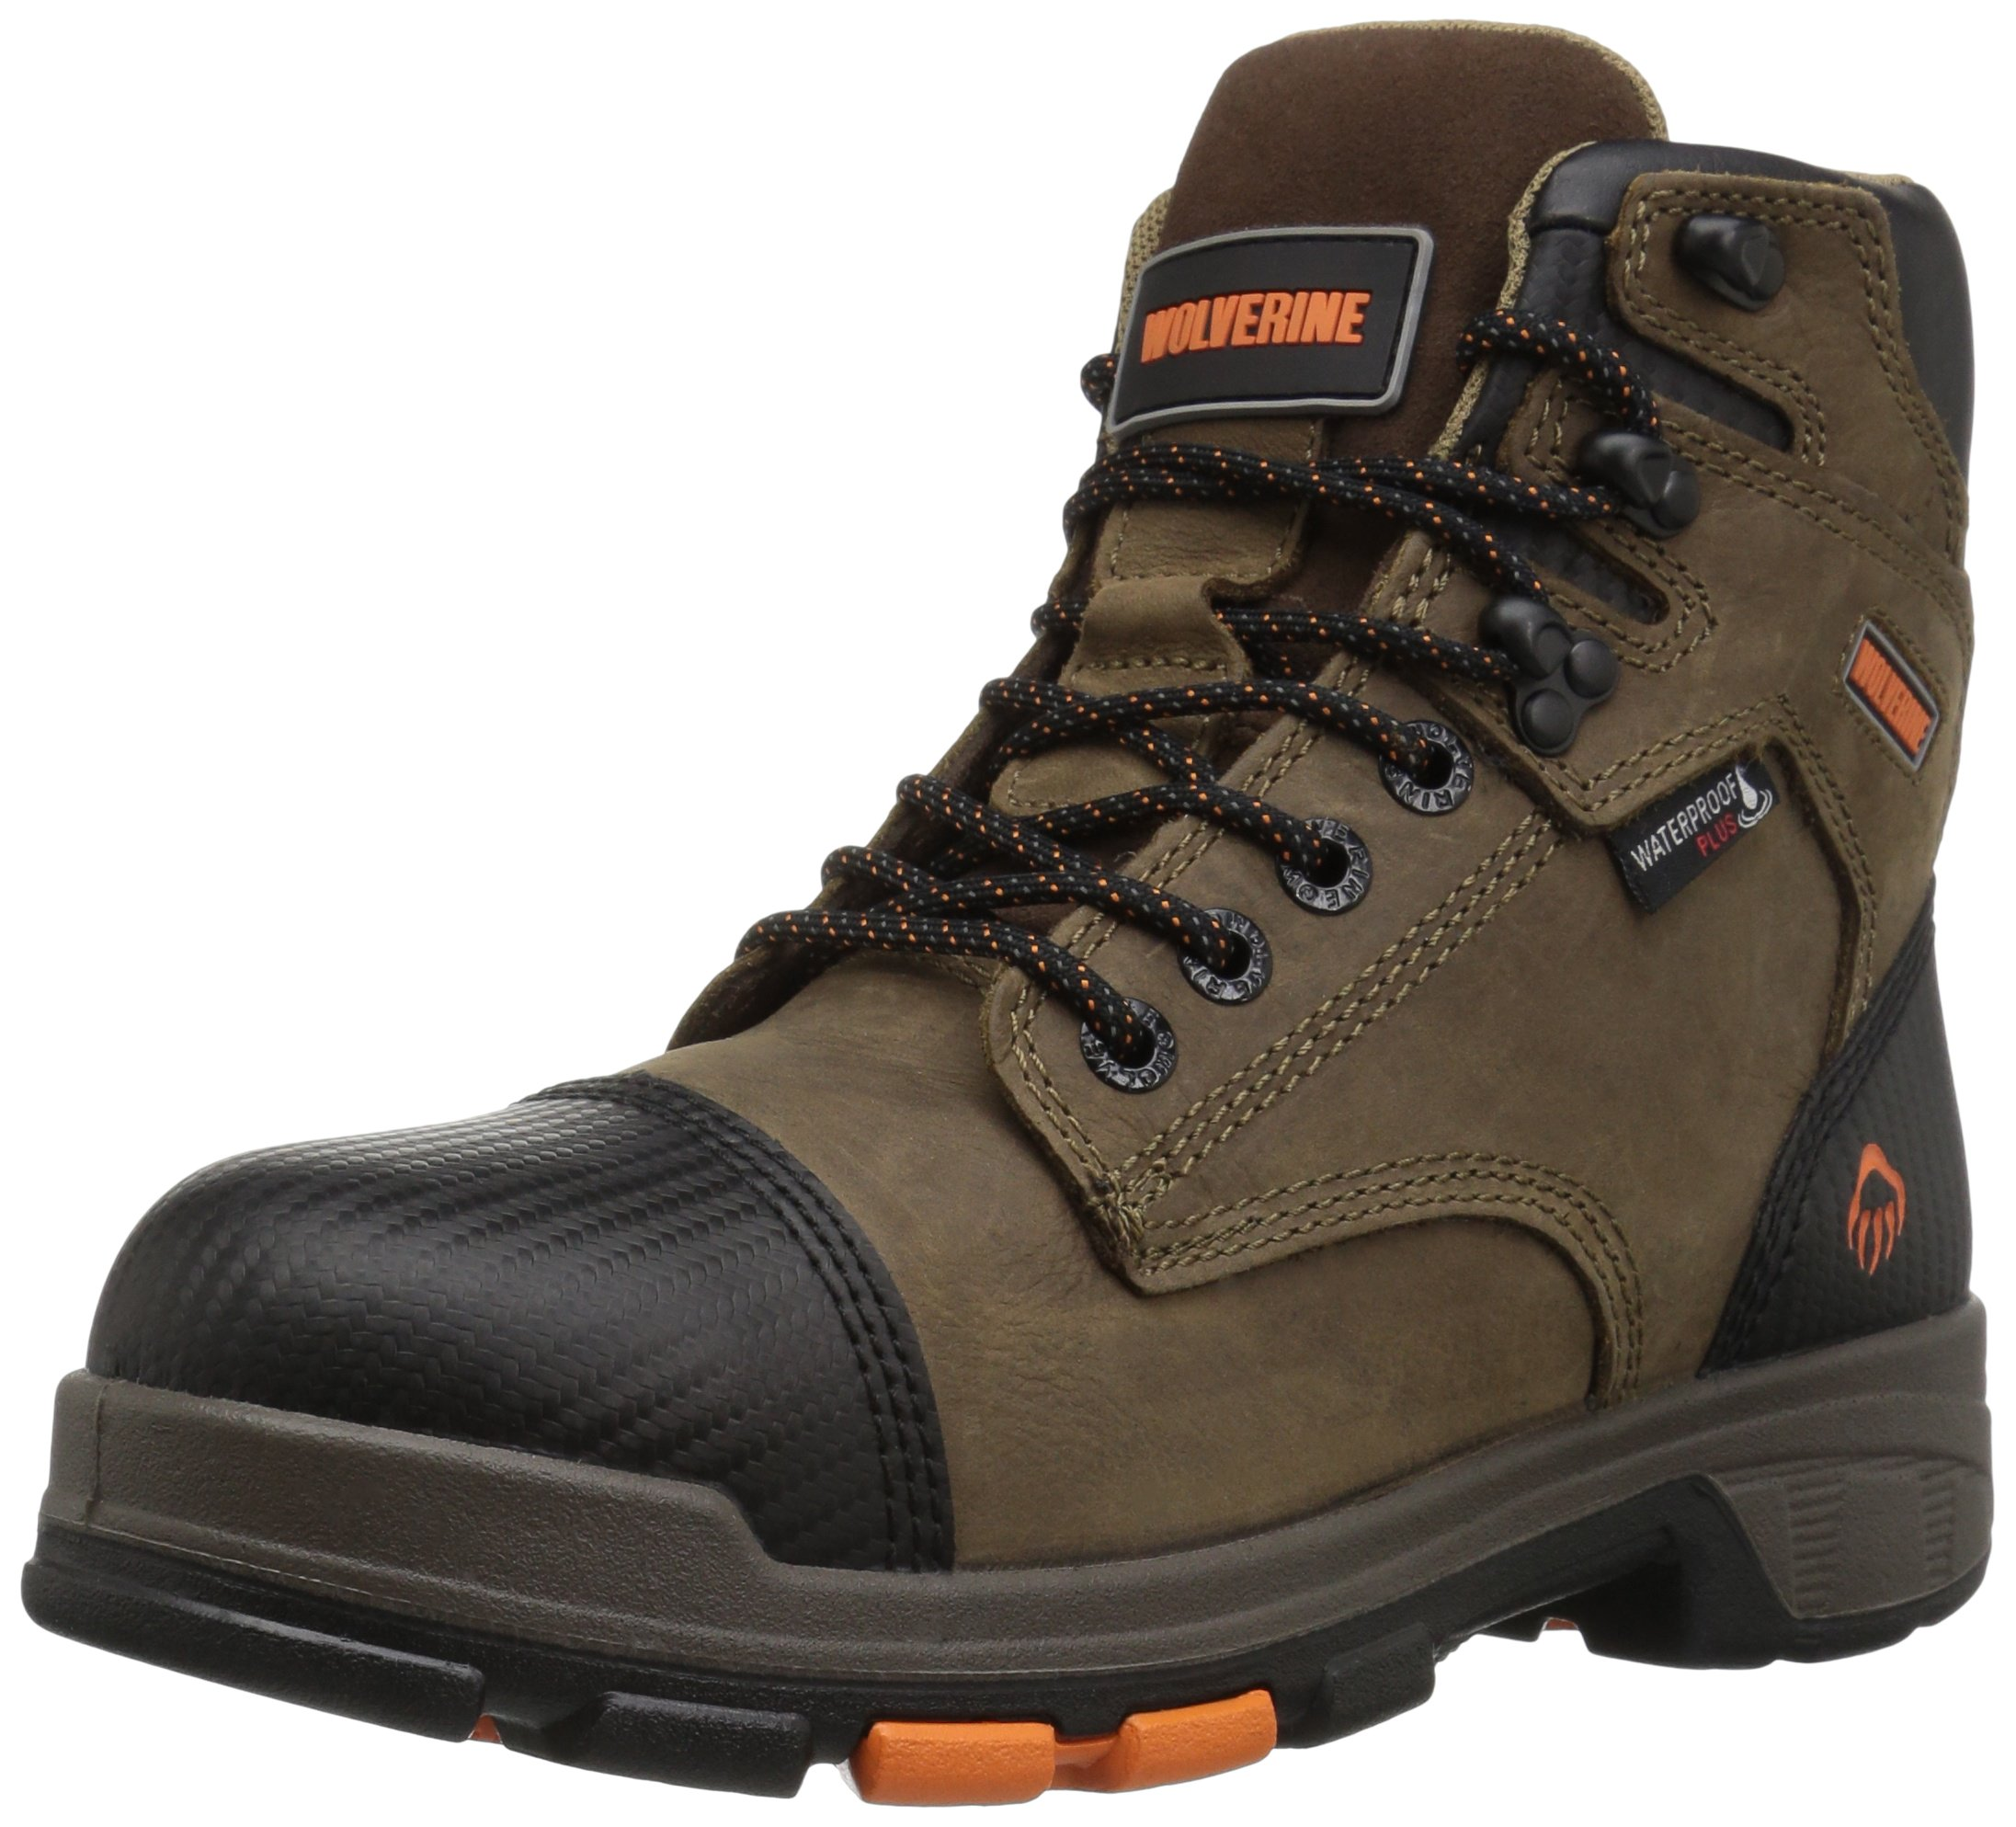 Wolverine Men's Blade LX Waterproof 6'' Soft Toe Work Boot, Brown, 13 M US